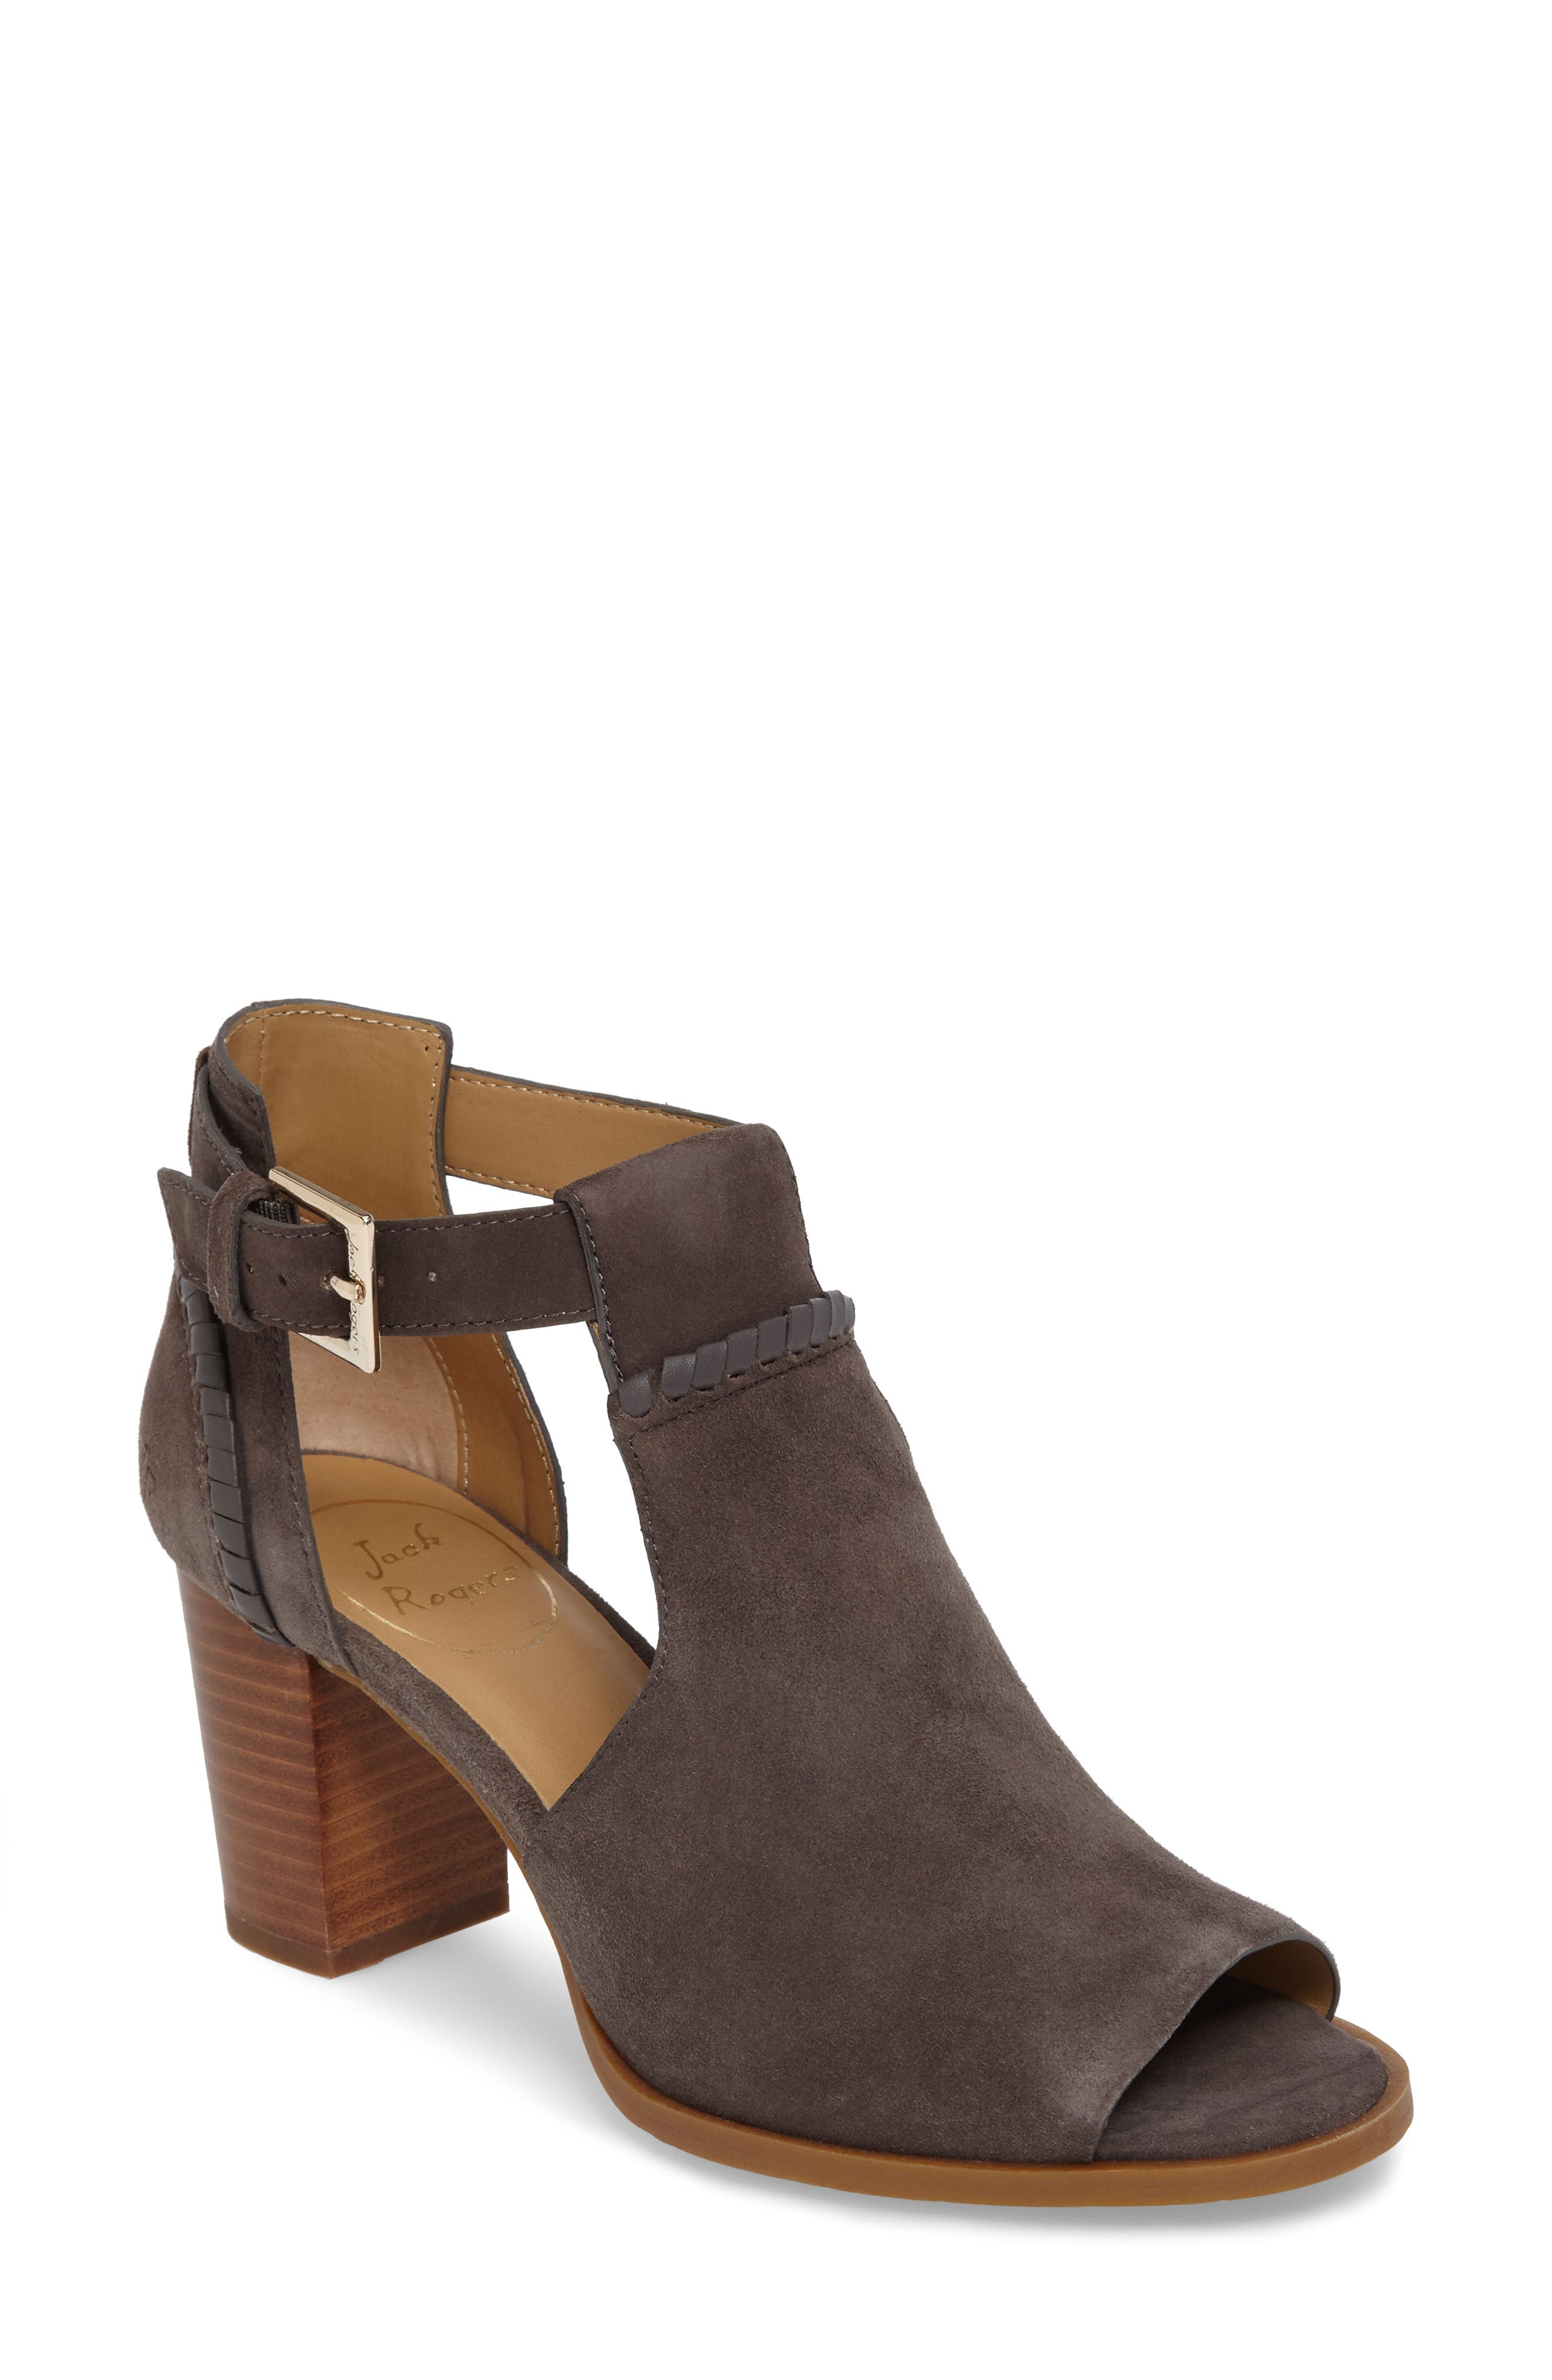 Cameron Block Heel Sandal,                             Main thumbnail 1, color,                             Charcoal Suede